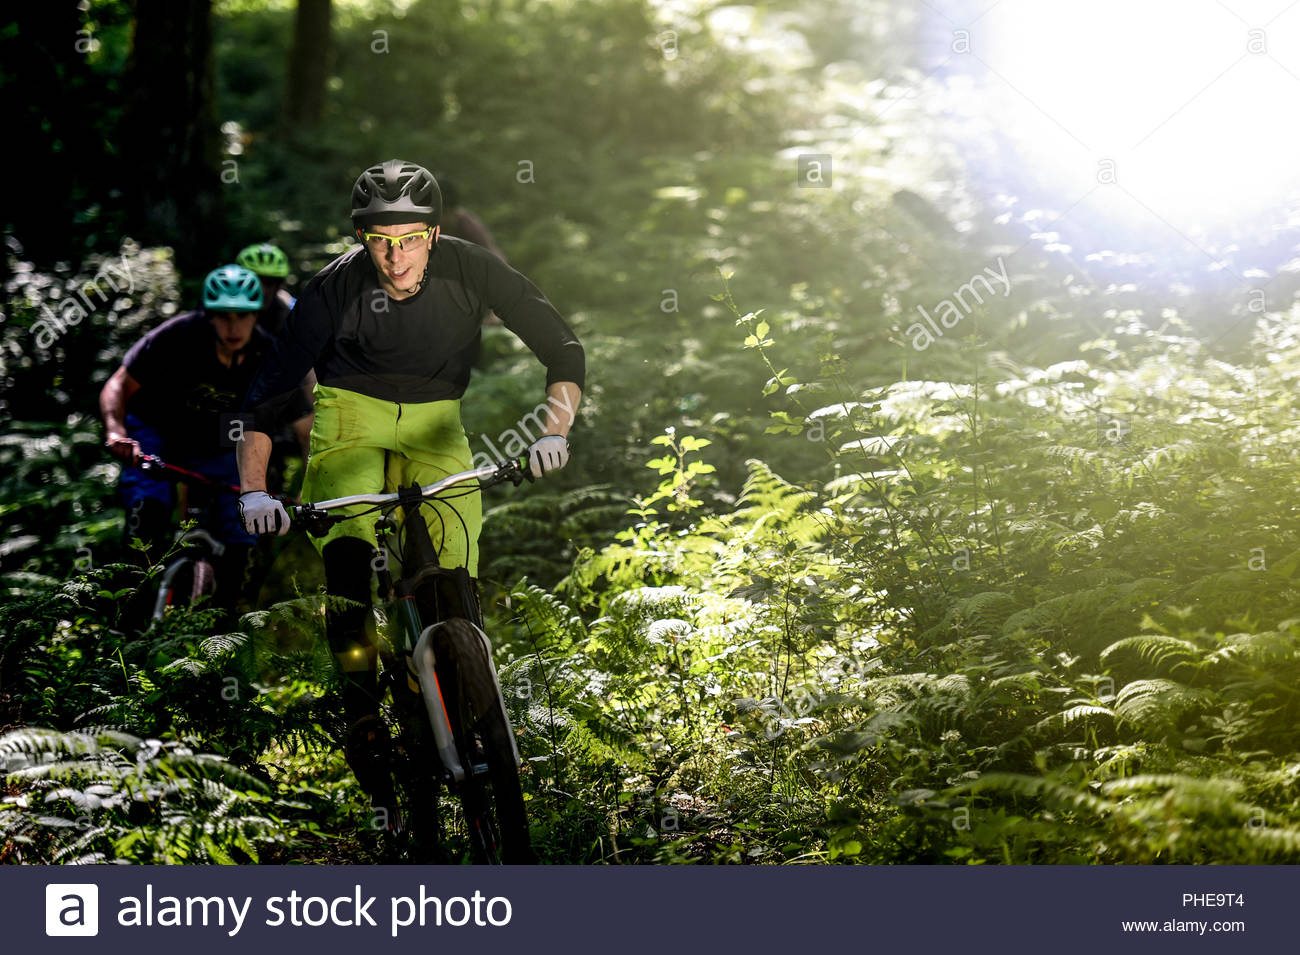 Man mountain biking in forest - Stock Image